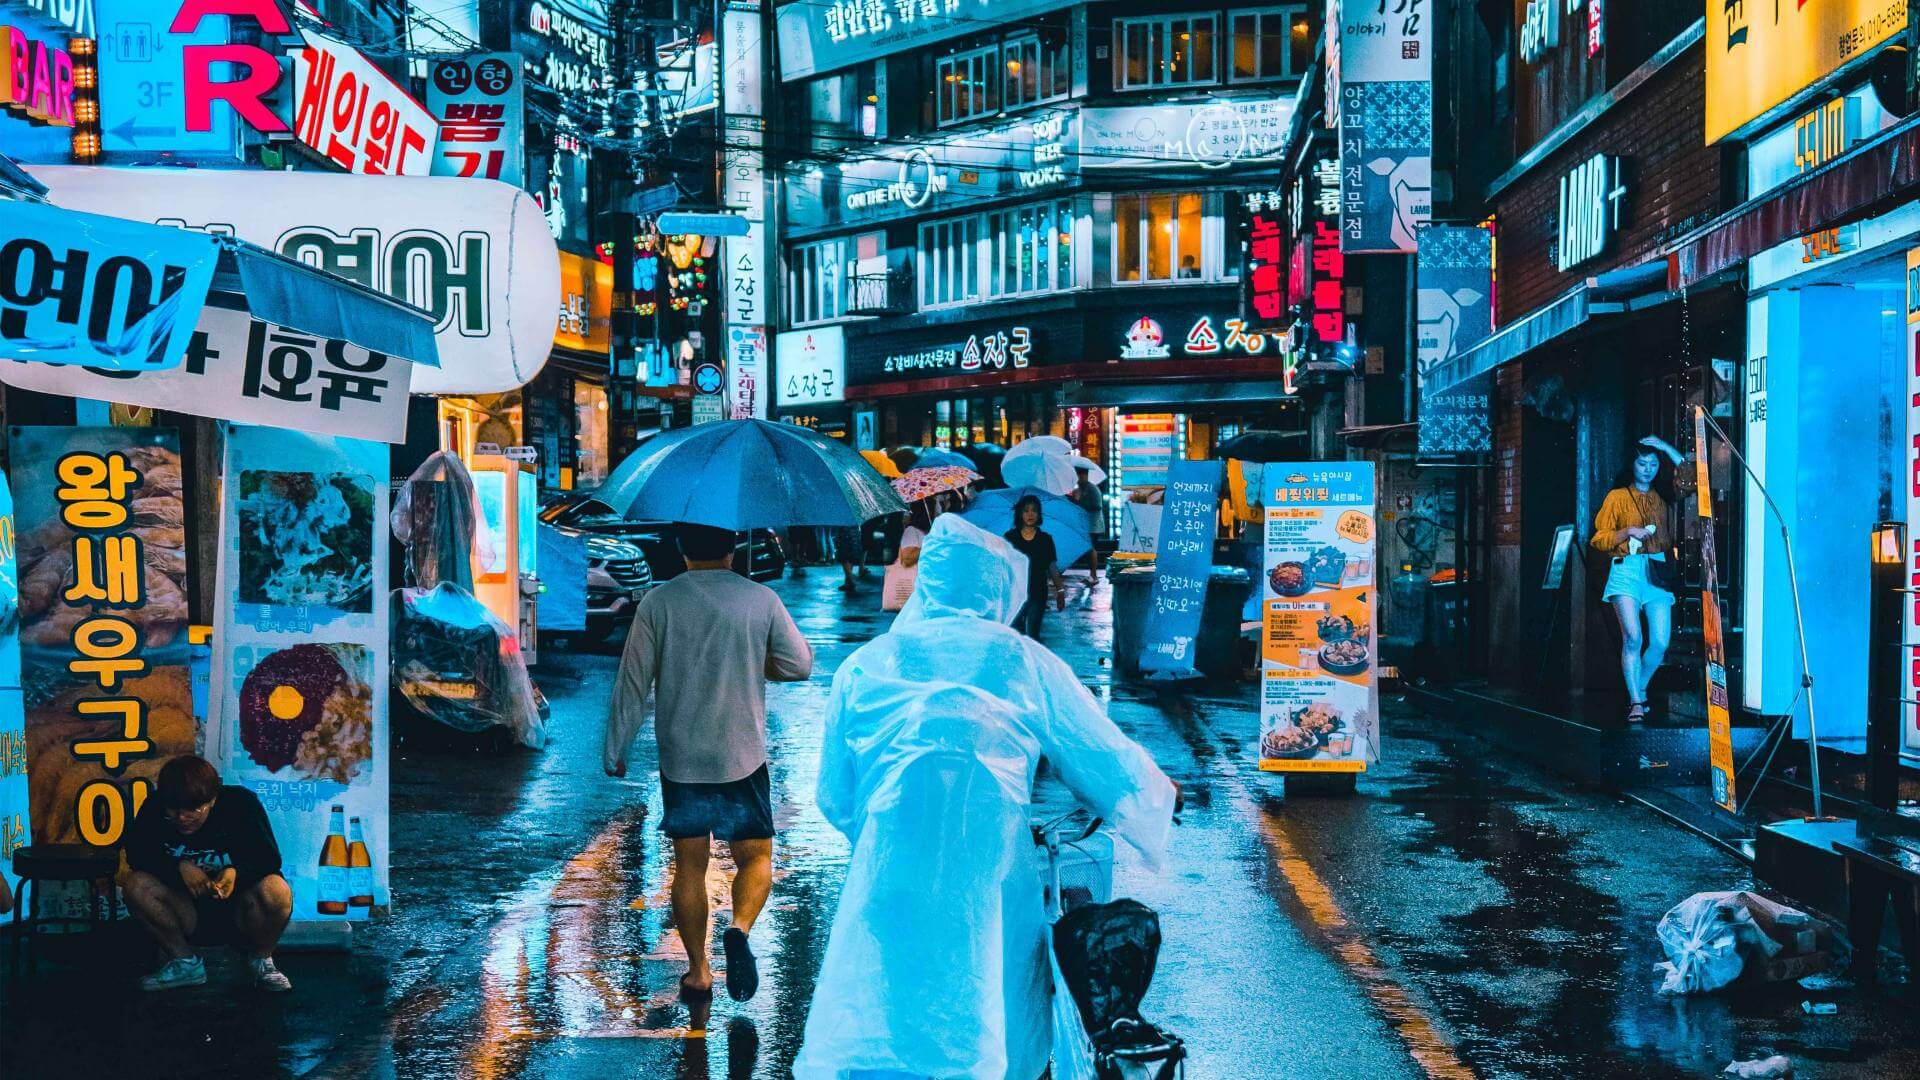 People walking with umbrellas during nighttime in Seoul.